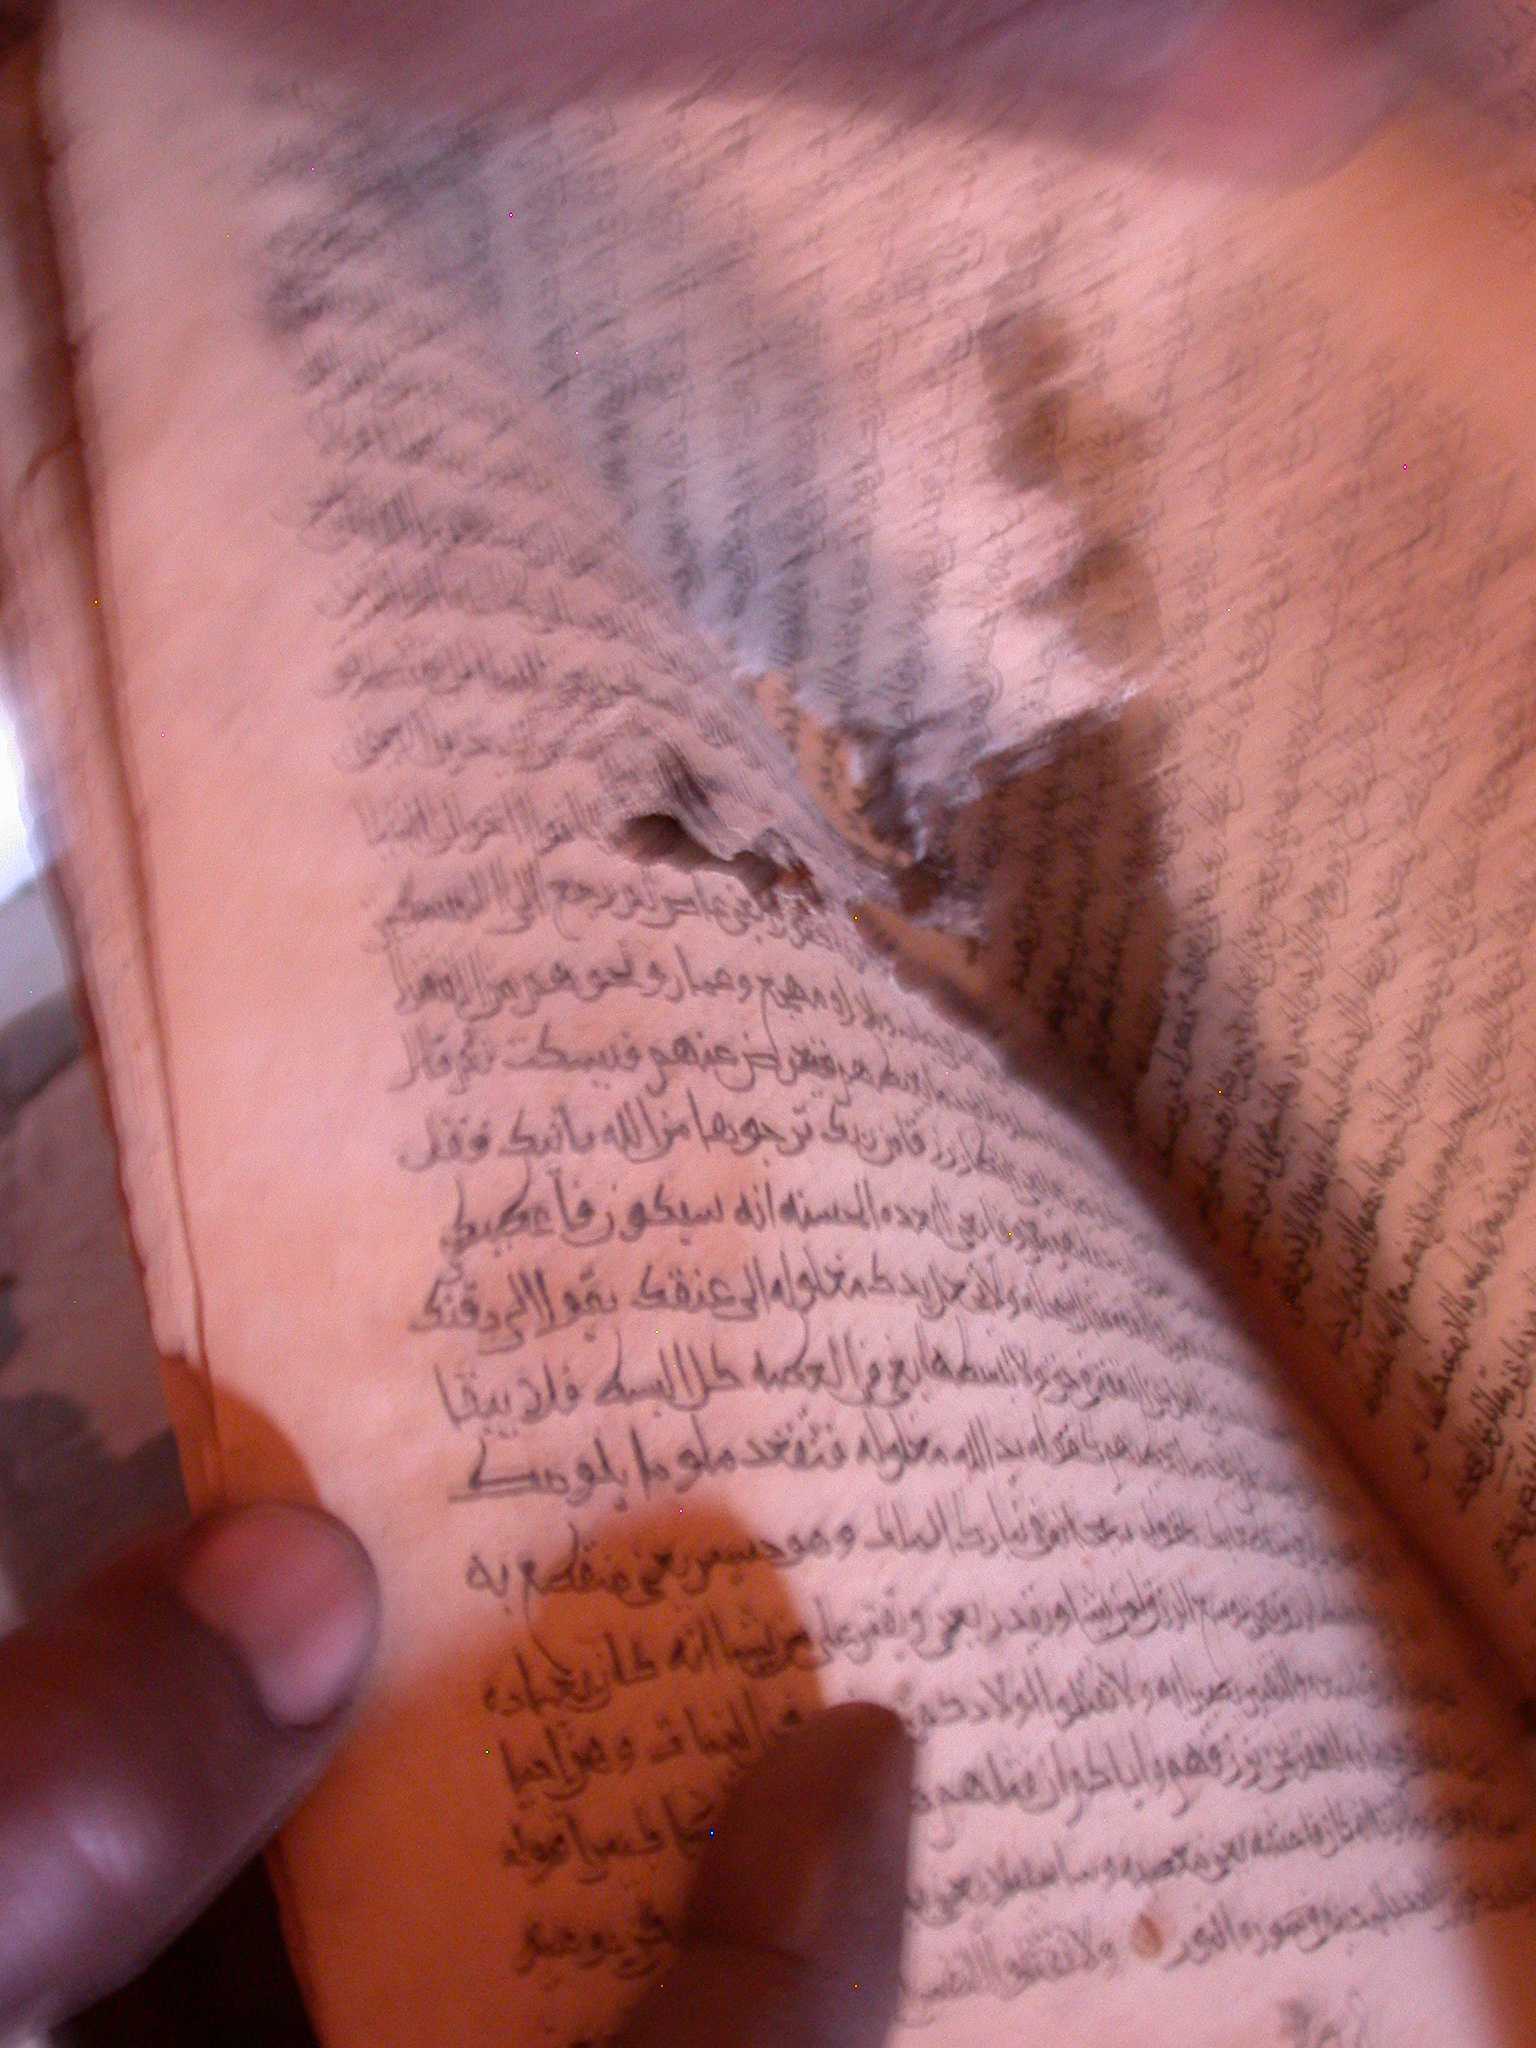 Termite-Eaten Book at Library in Ancient City of Oulata, Mauritania